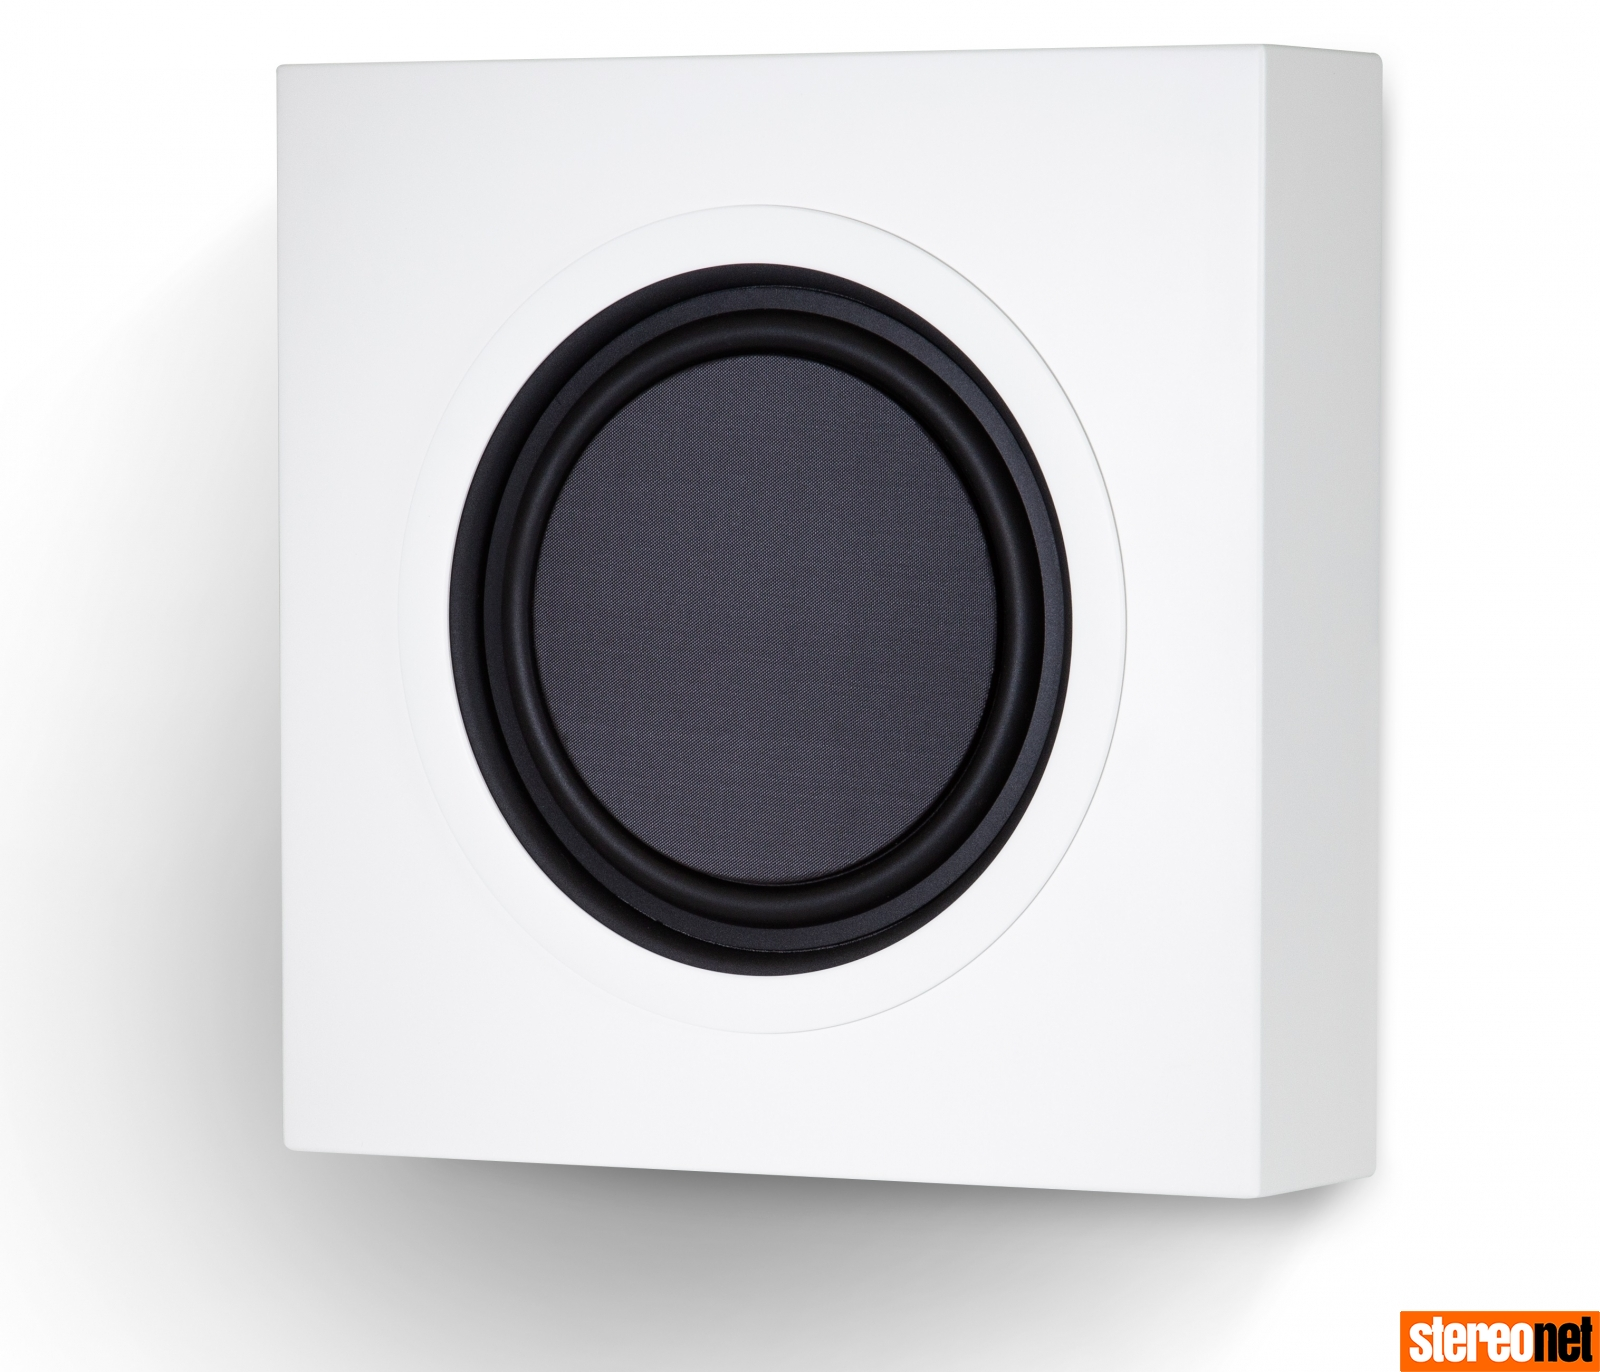 PSB Speakers and IsoAcoustics